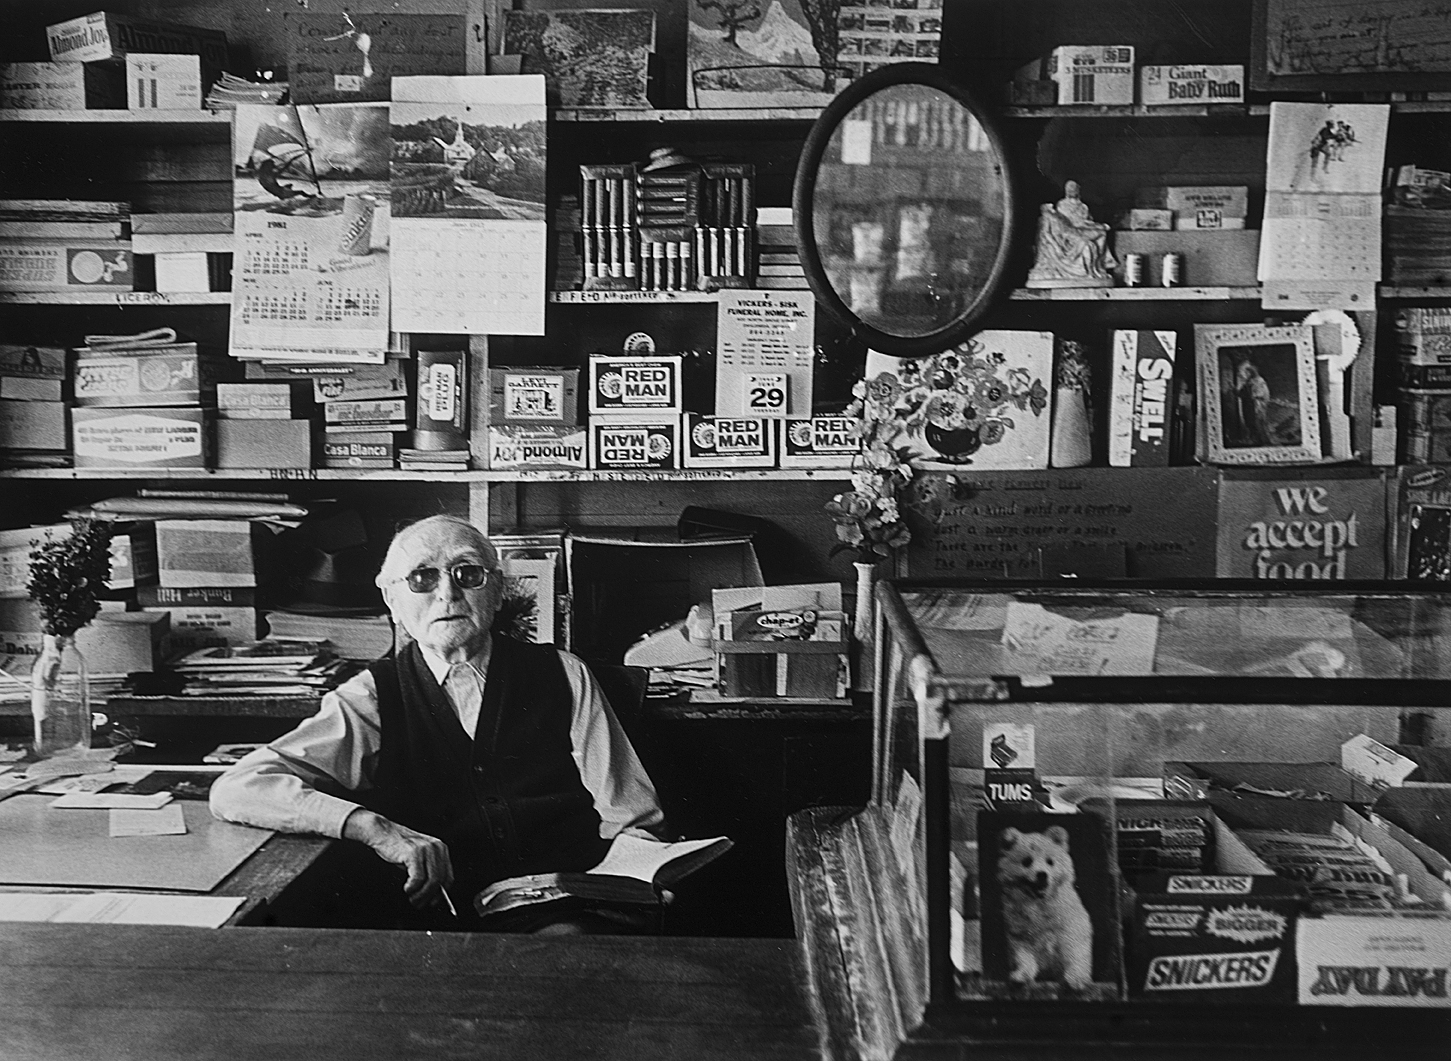 Dahlonega, GA -- Mr. Nelson Anderson Nix, age 97 when this photo was taken in 1981, sits at the helm of his store, Nix Grocery, on the Dahlonega square.